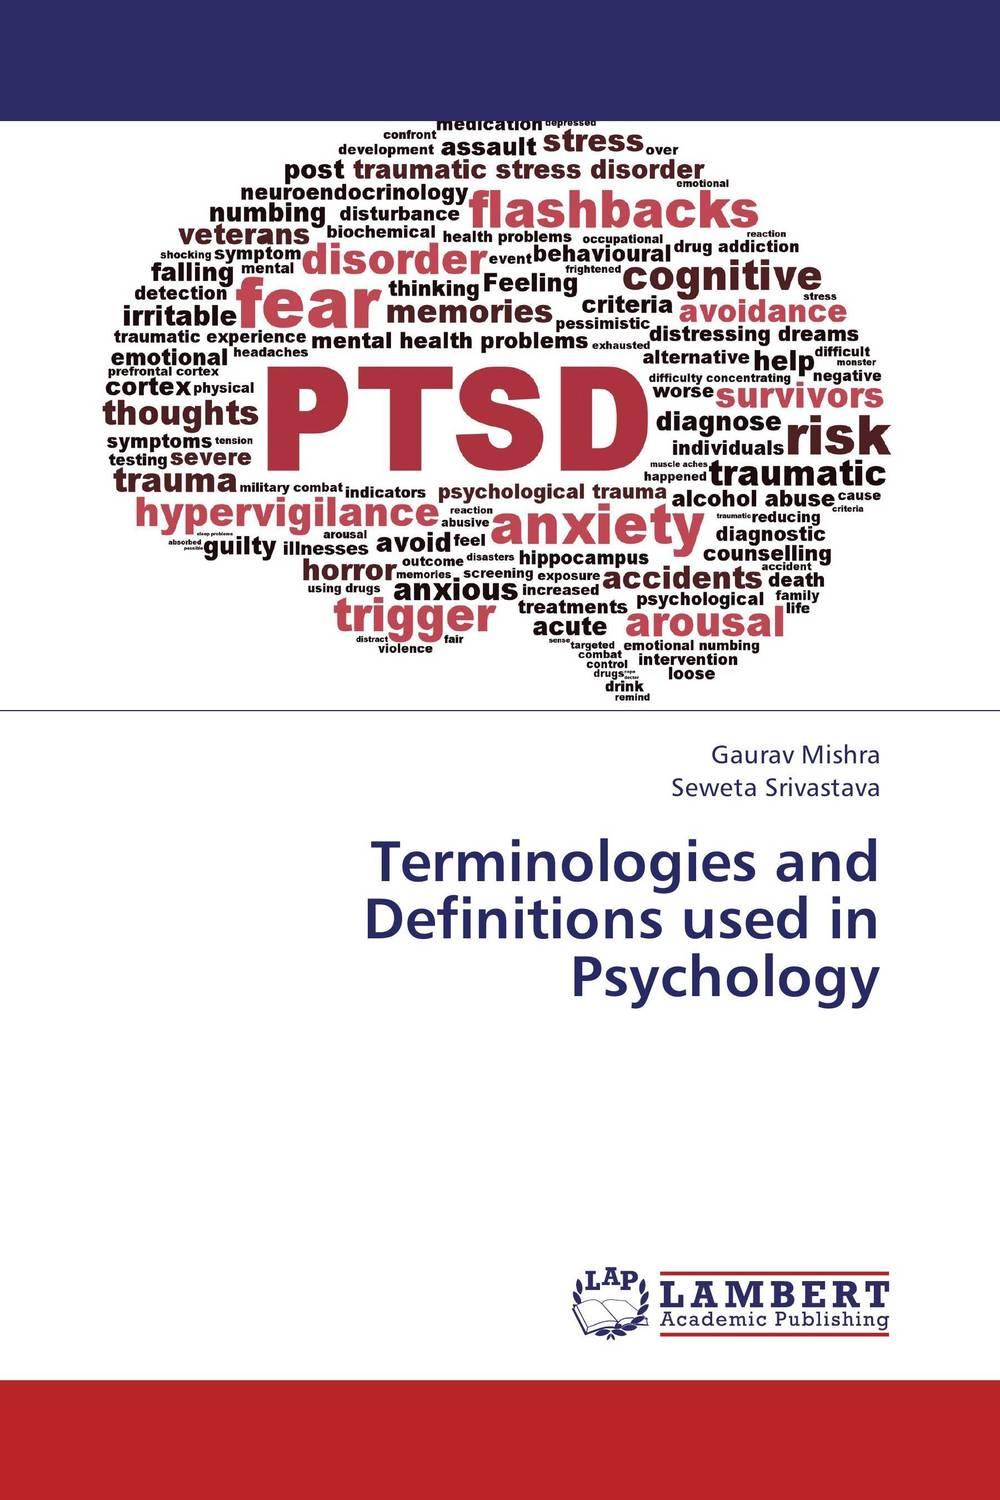 Terminologies and Definitions used in Psychology